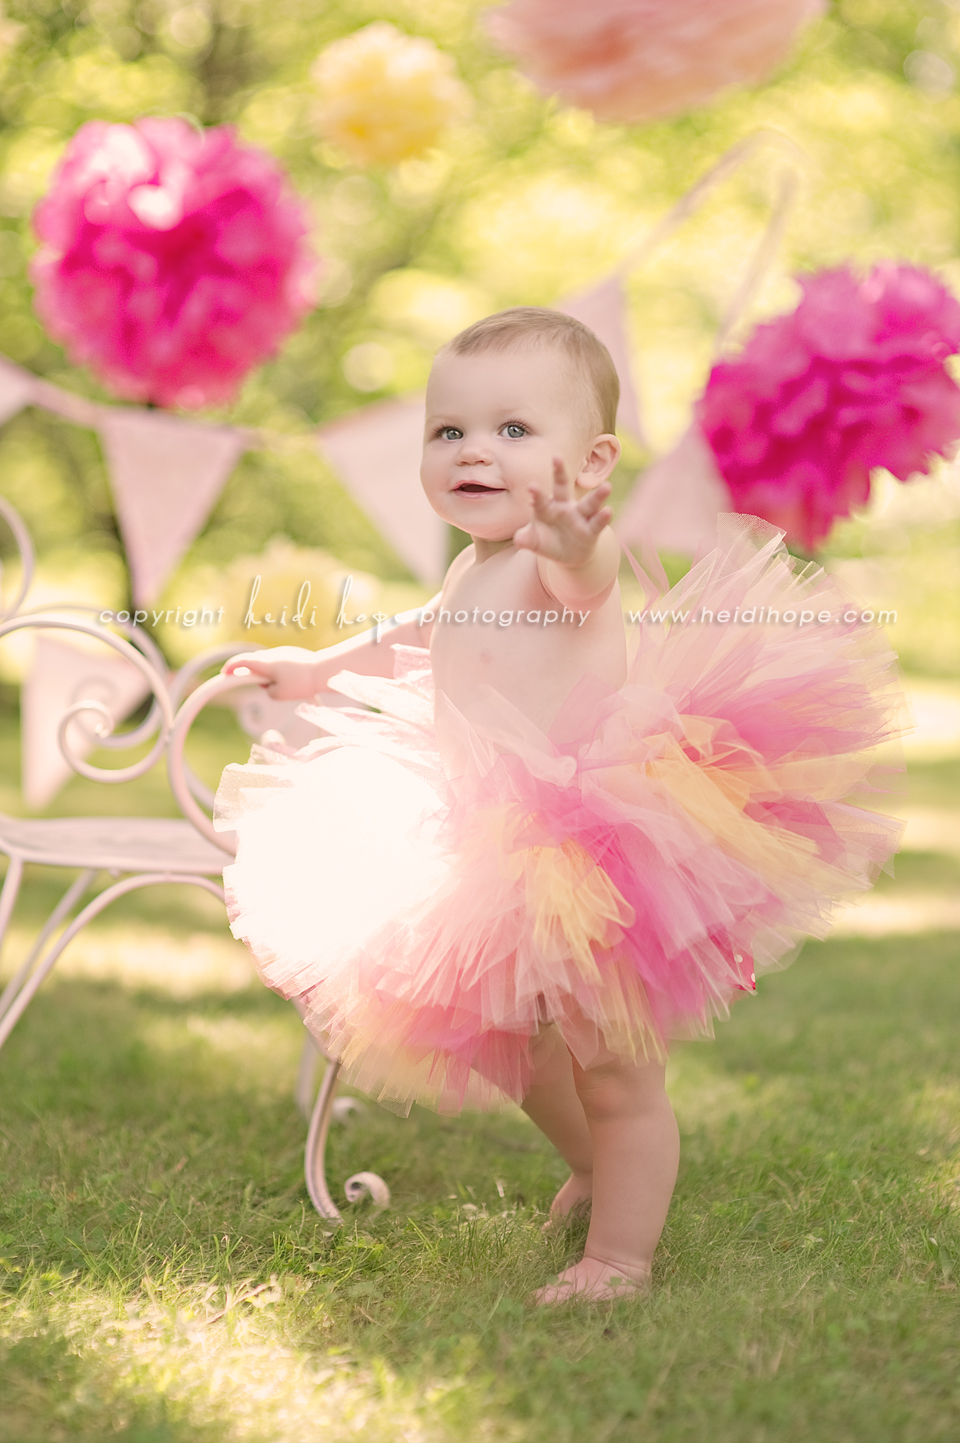 Cute Dresses For 1 Year Old Baby Girl   Where To Find In ...